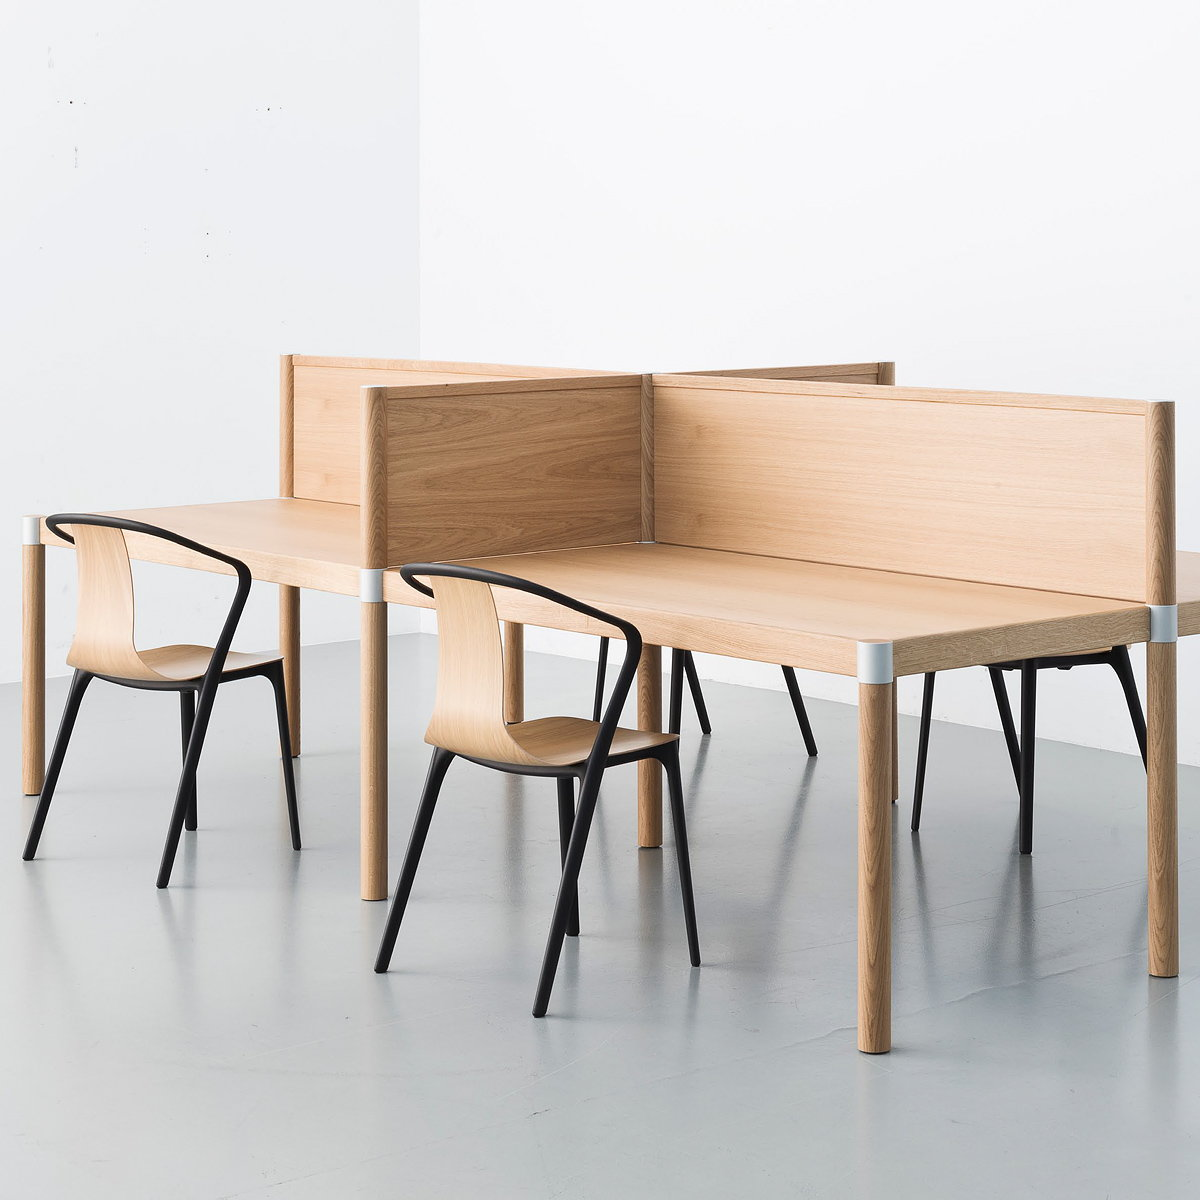 Ronan and Erwan Bouroullec Create Cyl System for Vitra